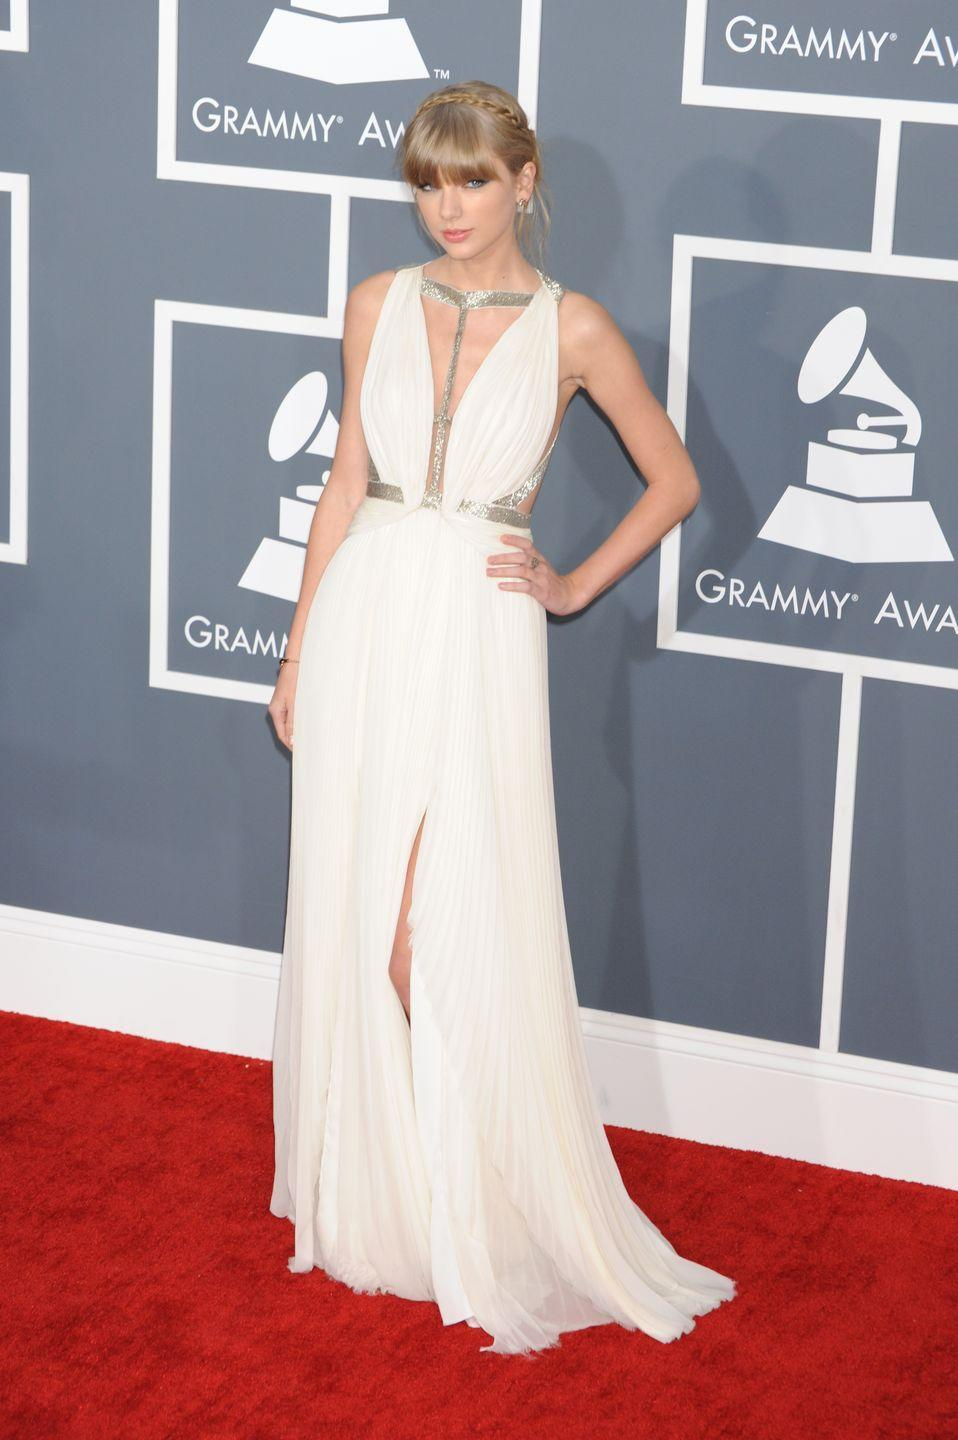 <p>Taylor Swift gave off serious Grecian goddess vibes at the 2013 Grammys when she wore this J.Mendel gown.</p><p> 10/10 for the braided hair look too.</p>